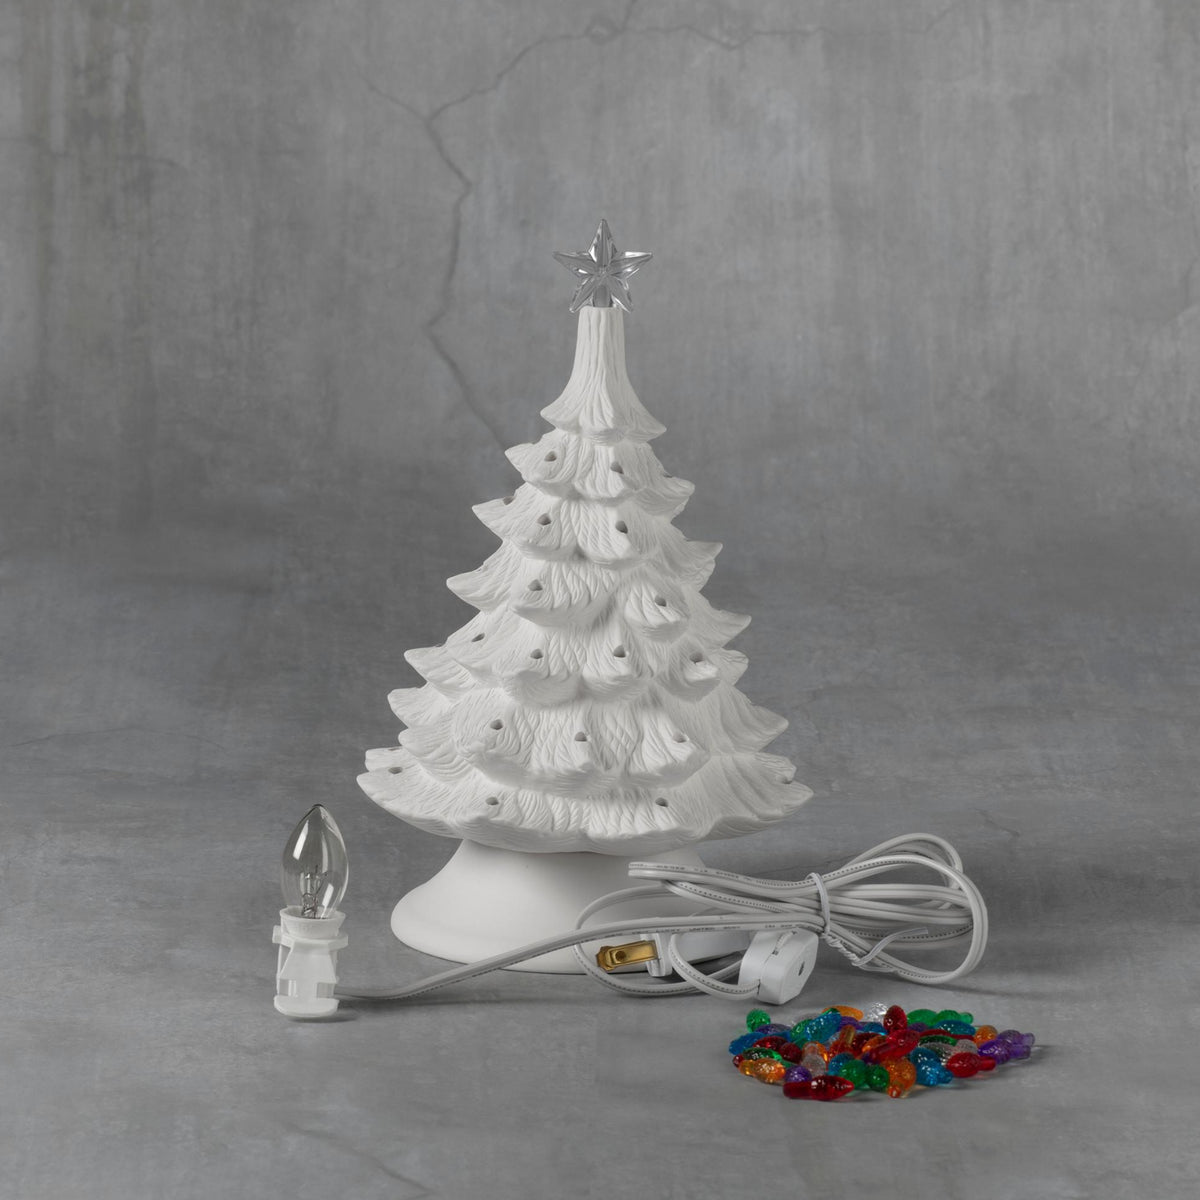 Duncan 45767 Bisque 8 inch Christmas Tree with Base, Case of 4